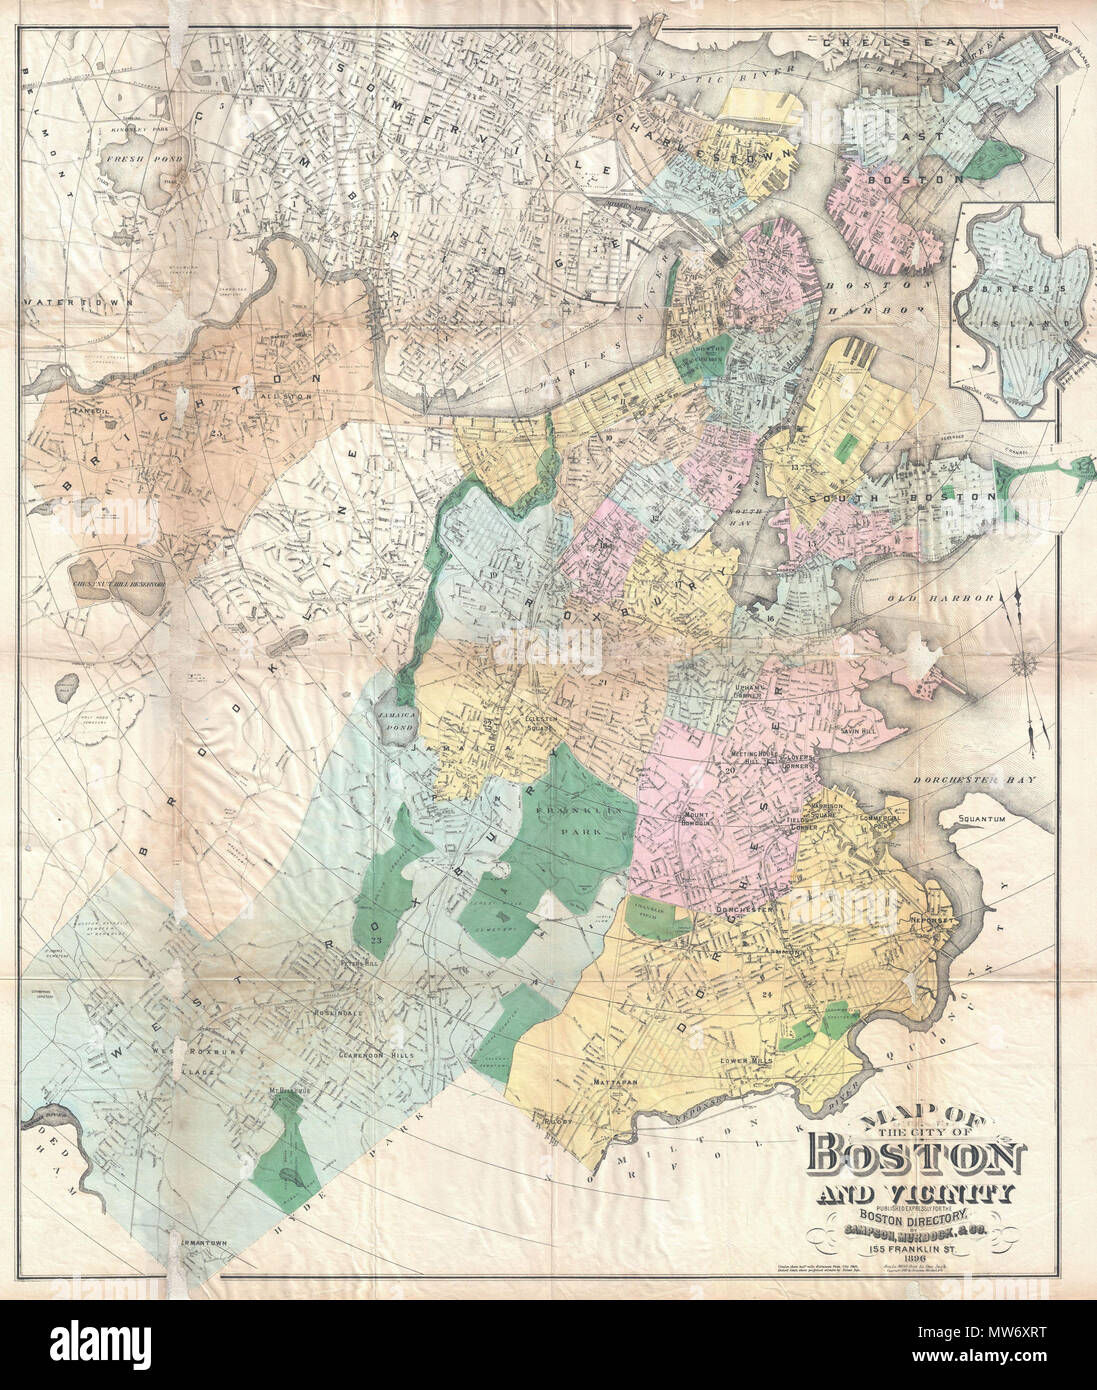 Map of The City of Boston and Vicinity. English: An extremely ...